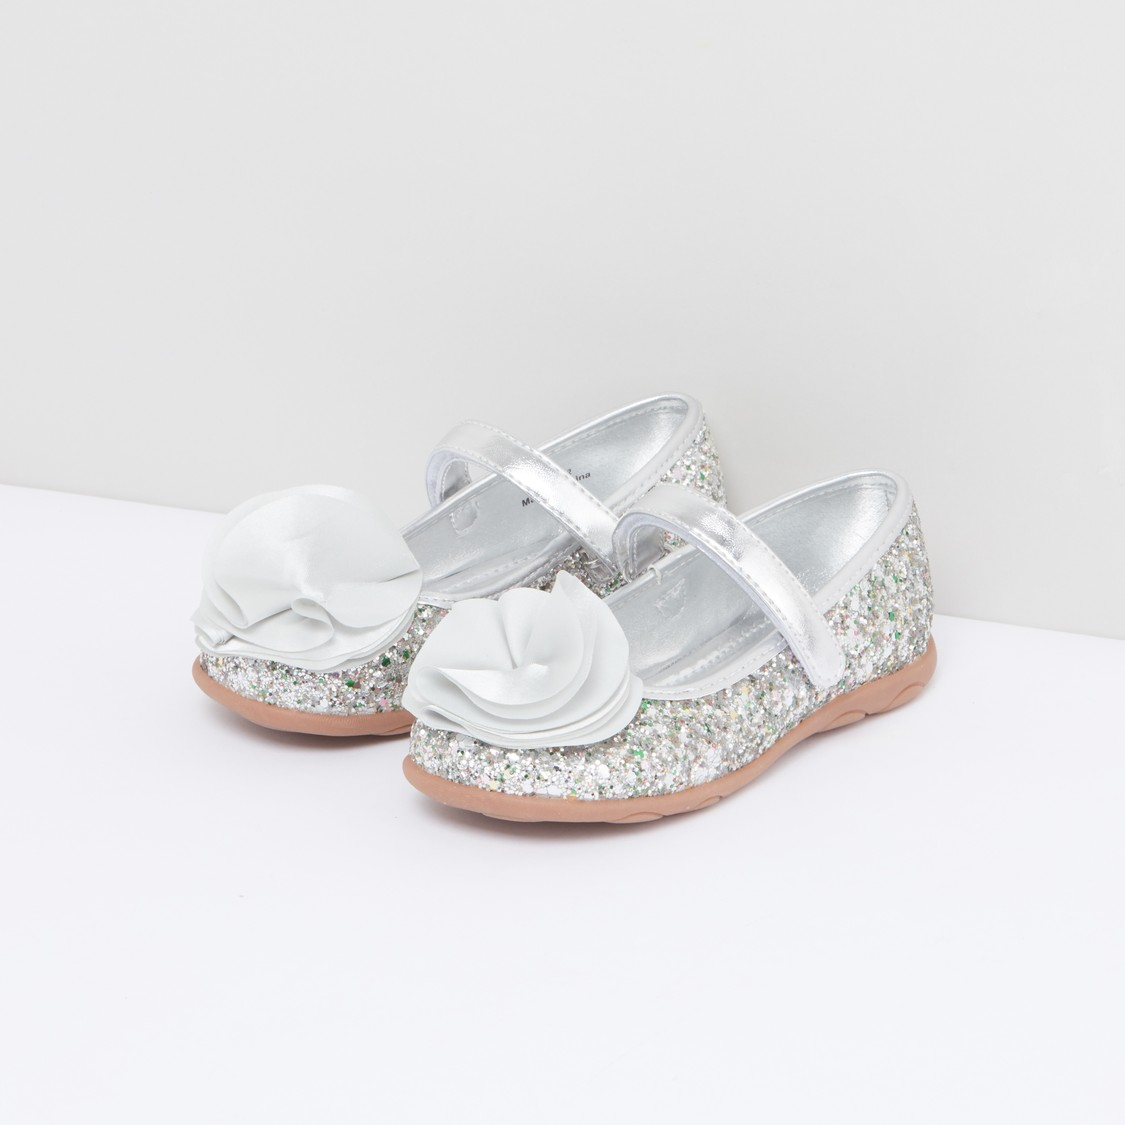 Flower Applique Detail Mary Jane Shoes with Hook and Loop Closure